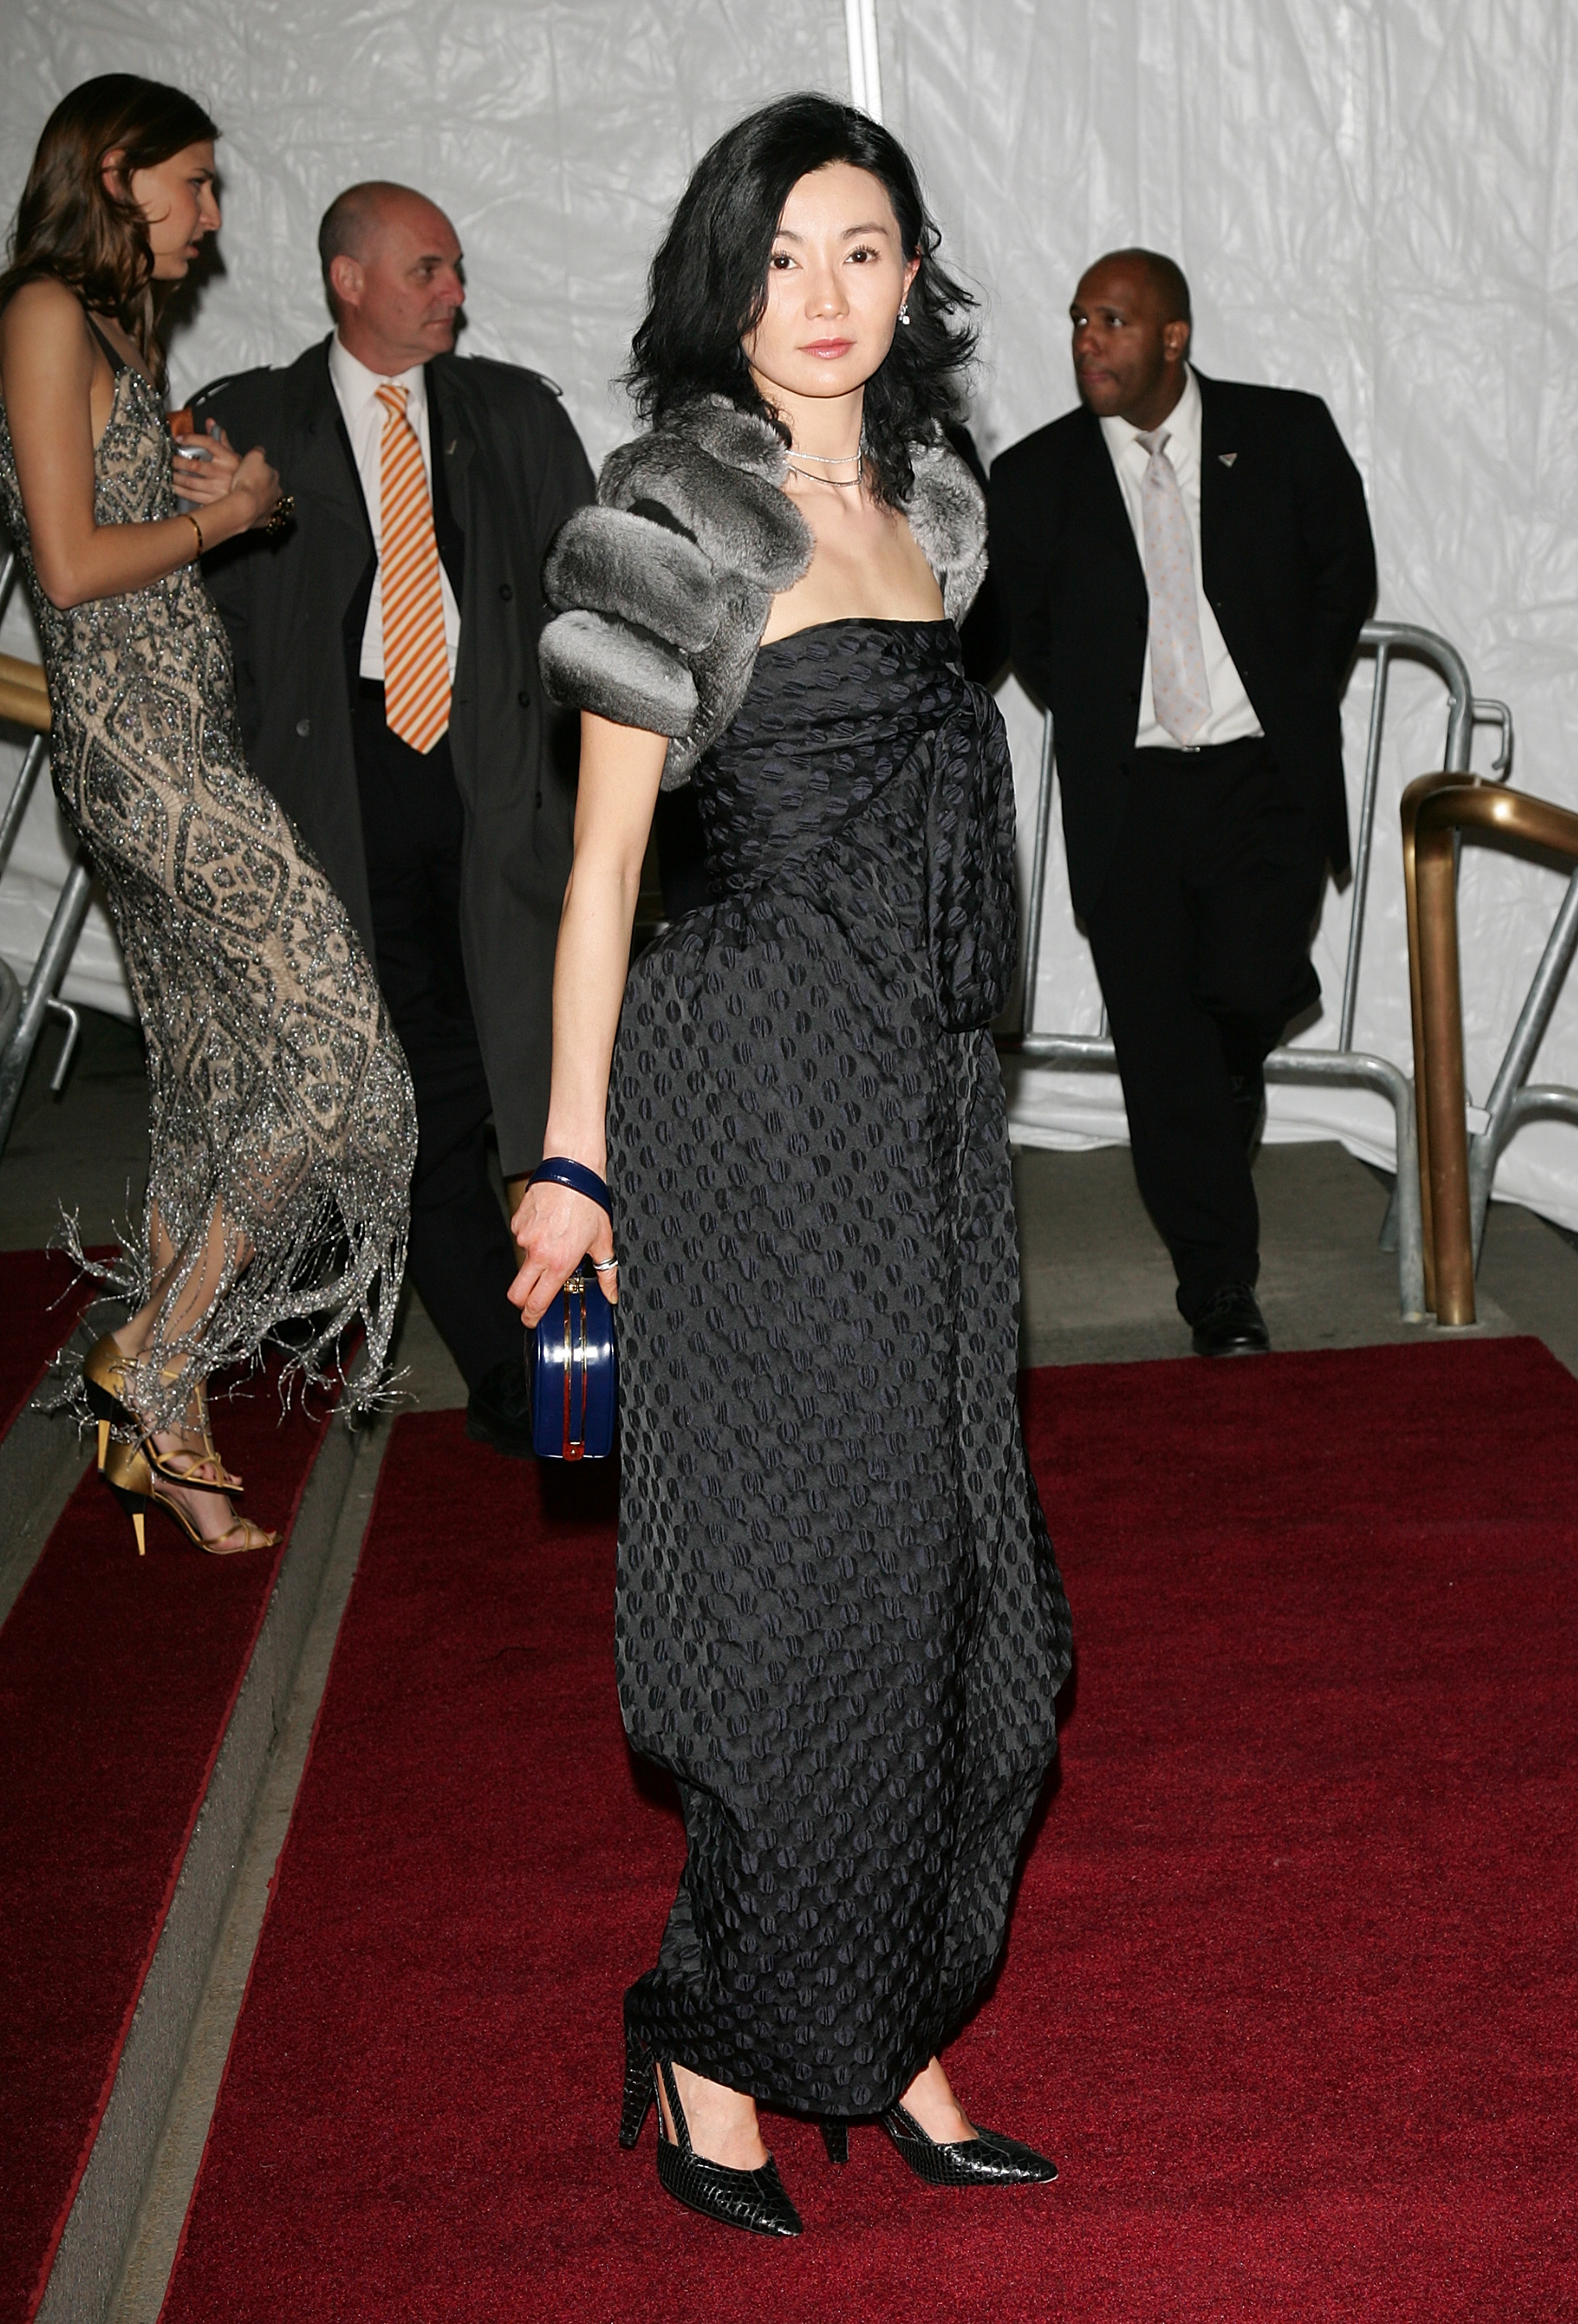 maggie cheung poses on the red carpet at the met gala